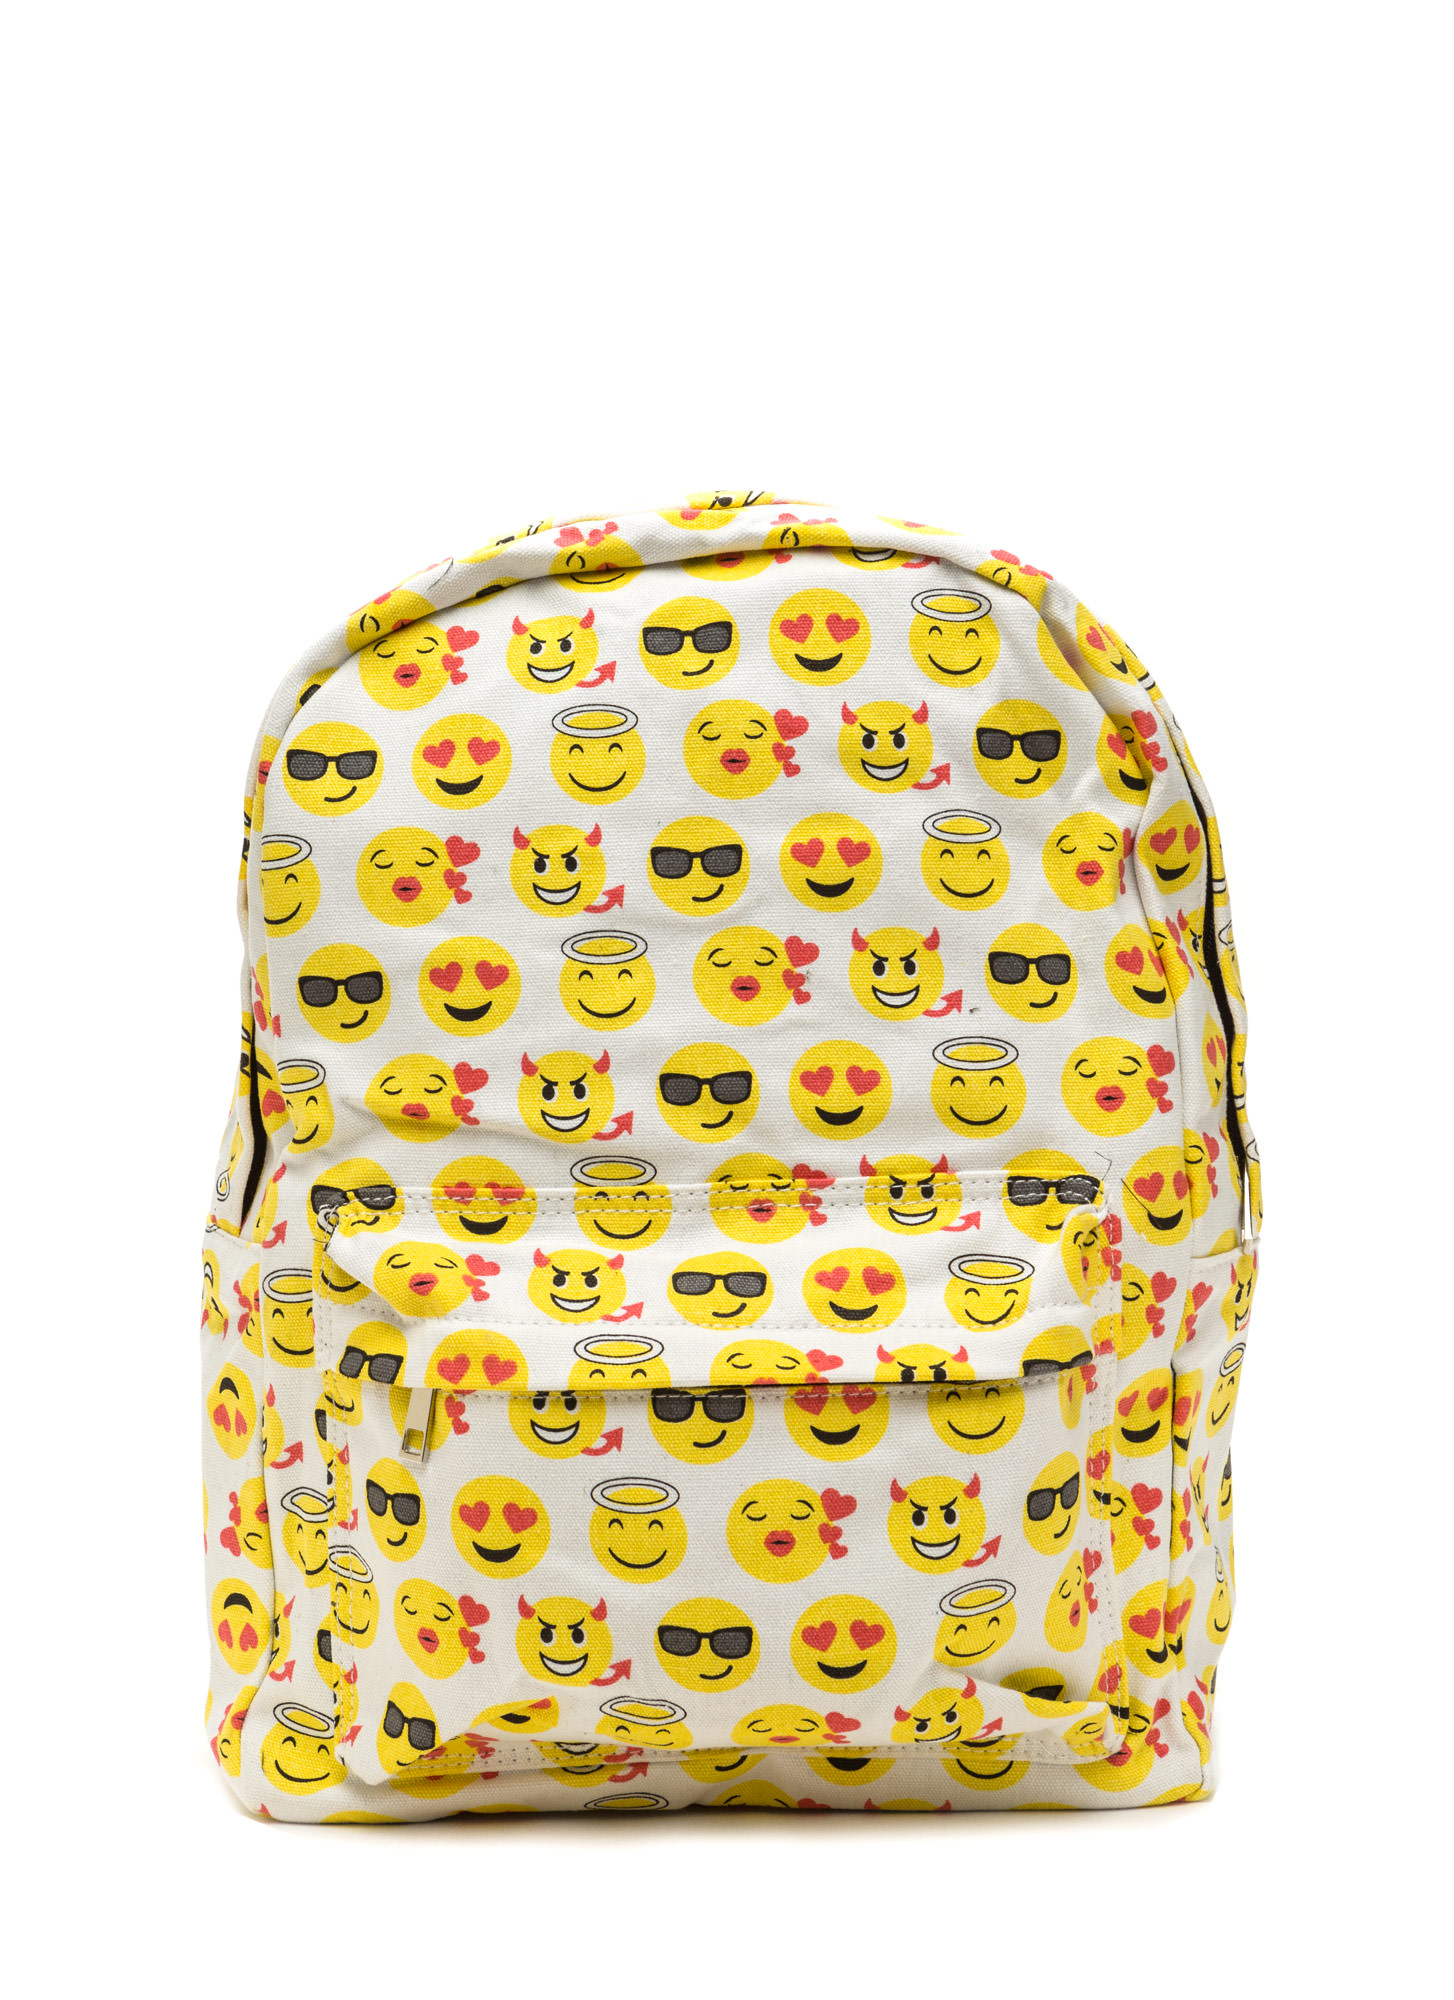 Choked By Emotion Printed Emoji Backpack WHITEMULTI